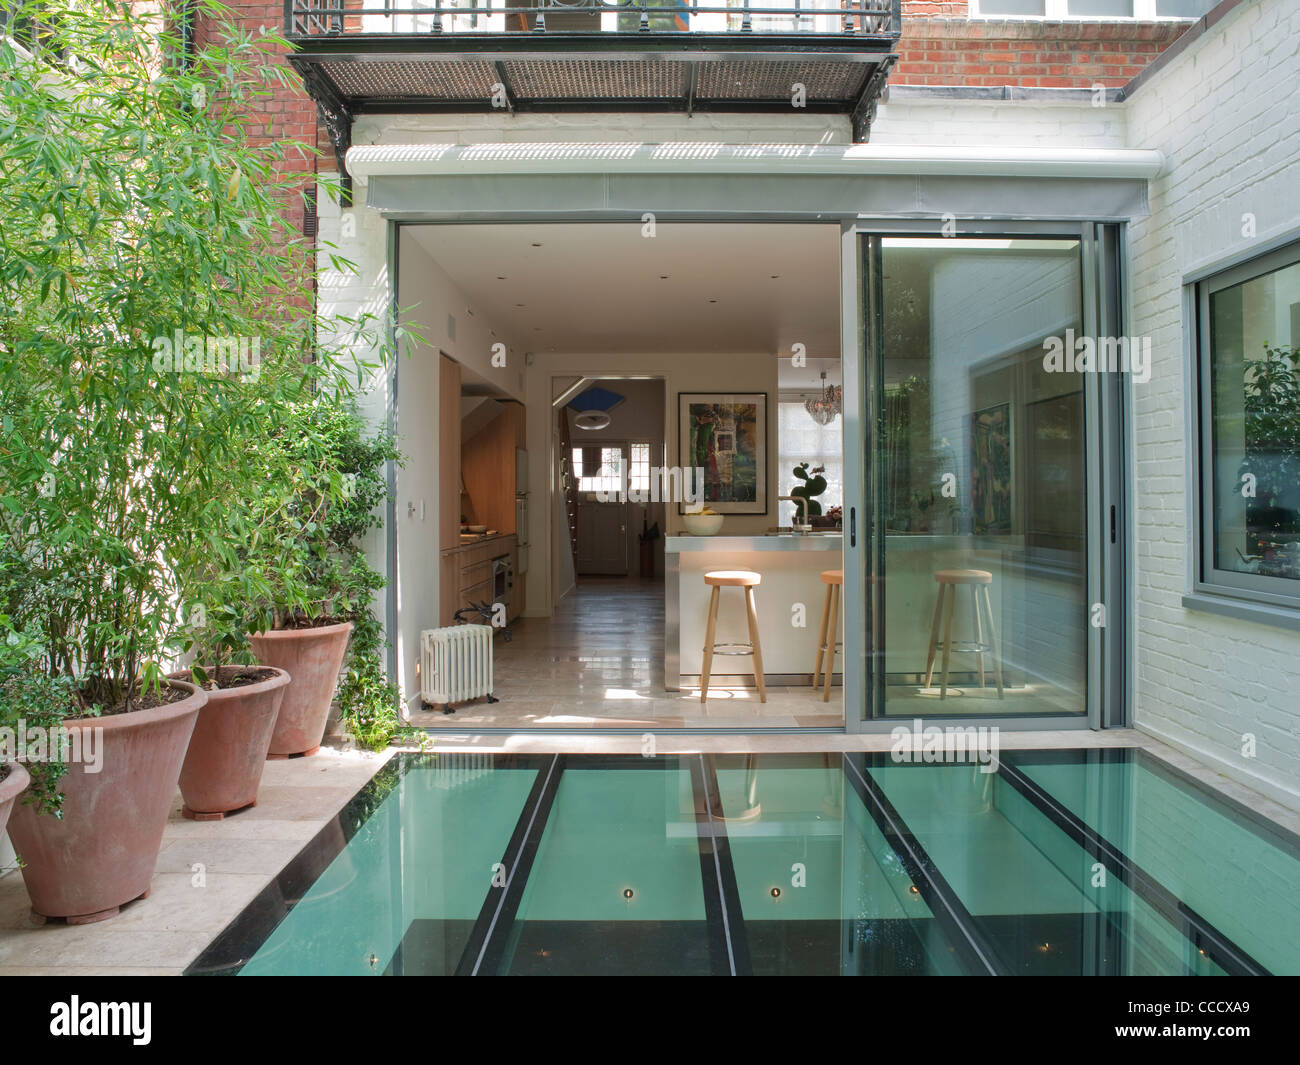 PRIVATE HOUSE LONDON GLASS AND NEW BASEMENT EXTENSION